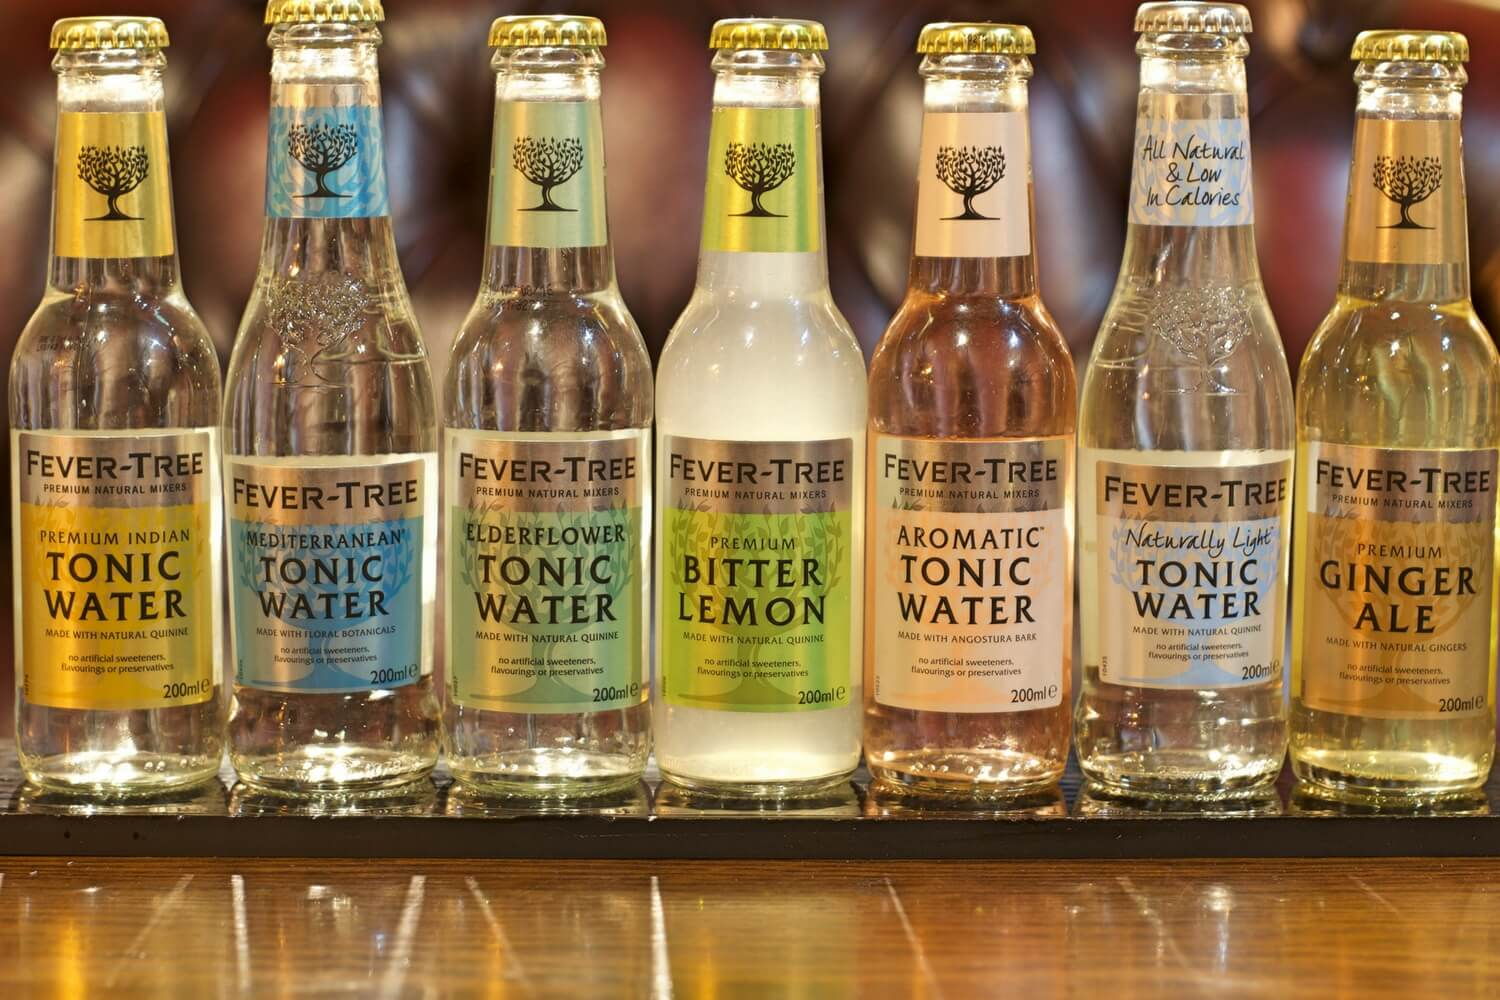 Fever-Tree Tonic Water - The Purple Dog Pub Colchester